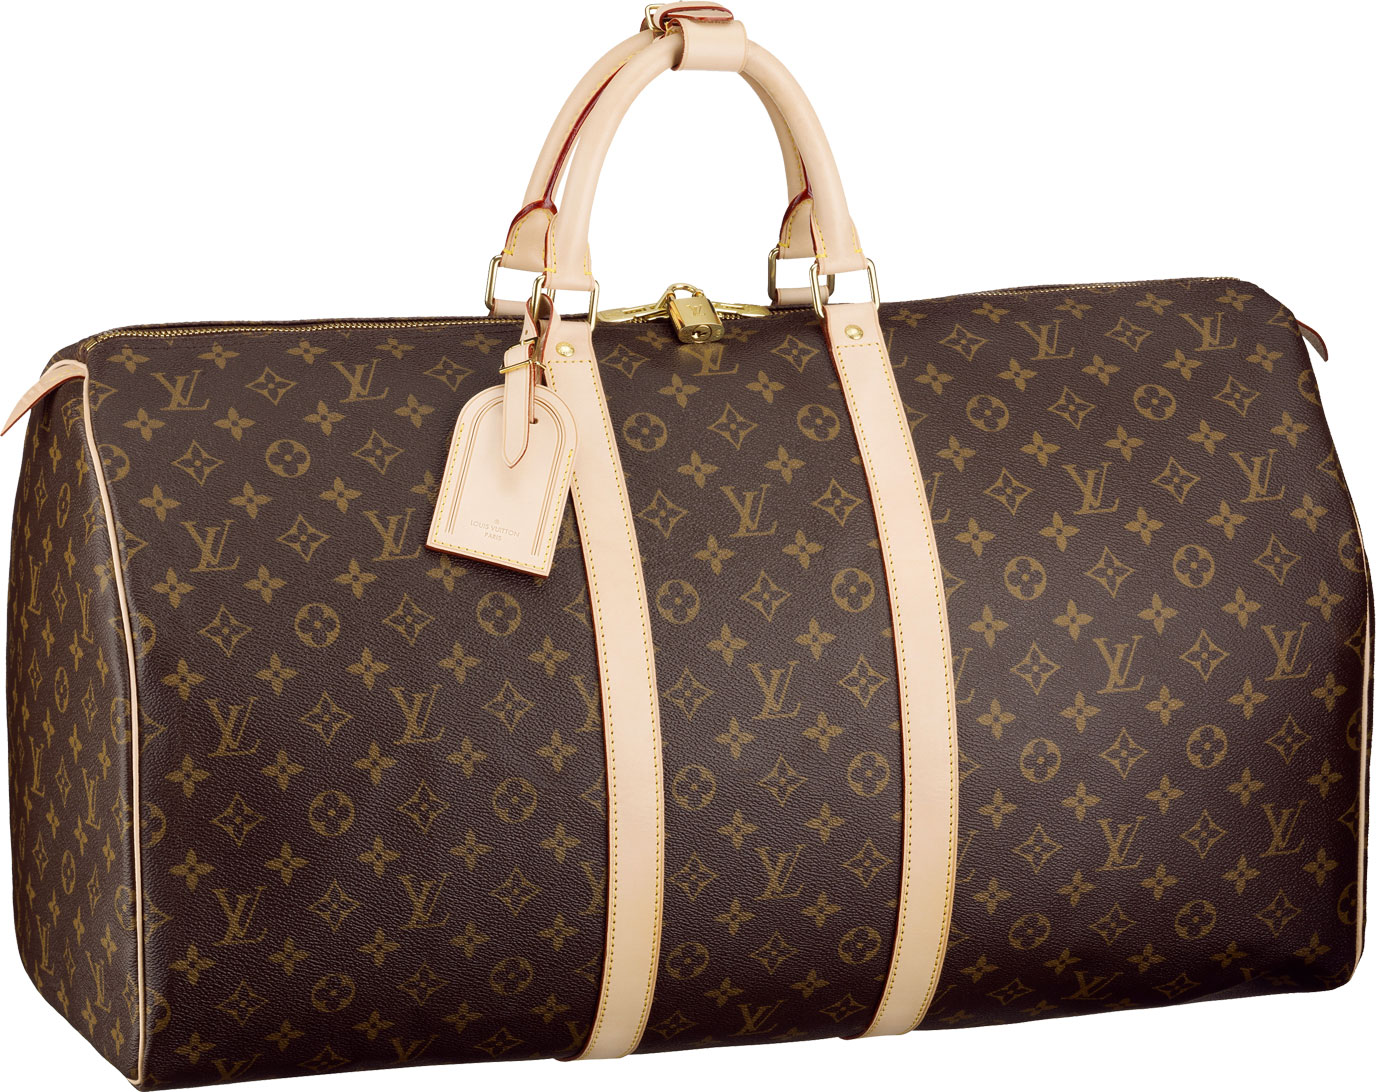 Louis Vuitton Carteras